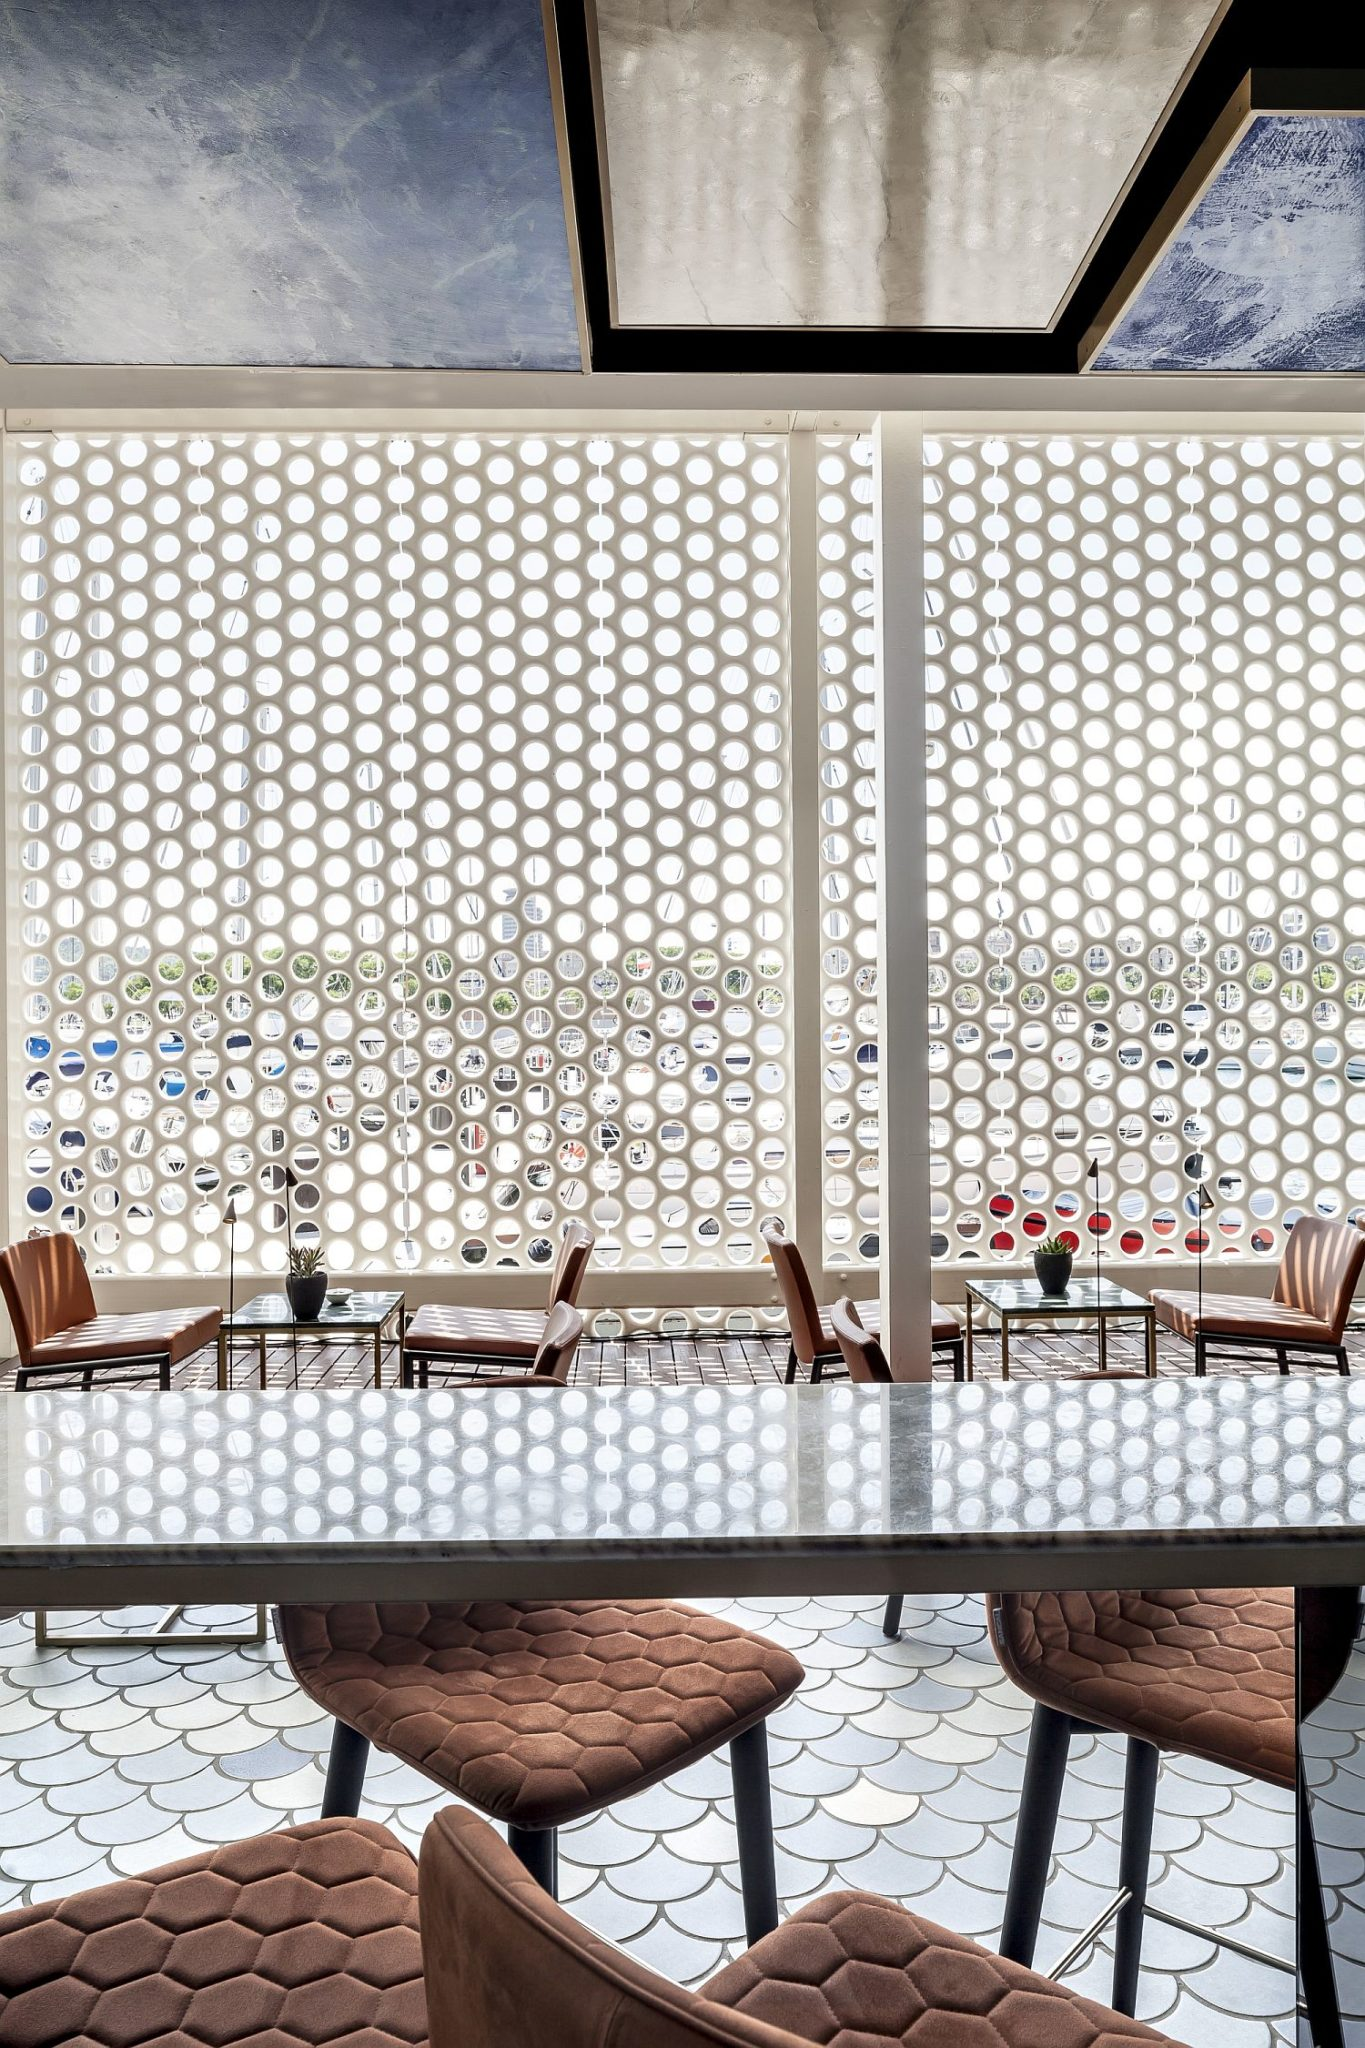 Existing white lattice of the building is carefully intertwined with the bar design